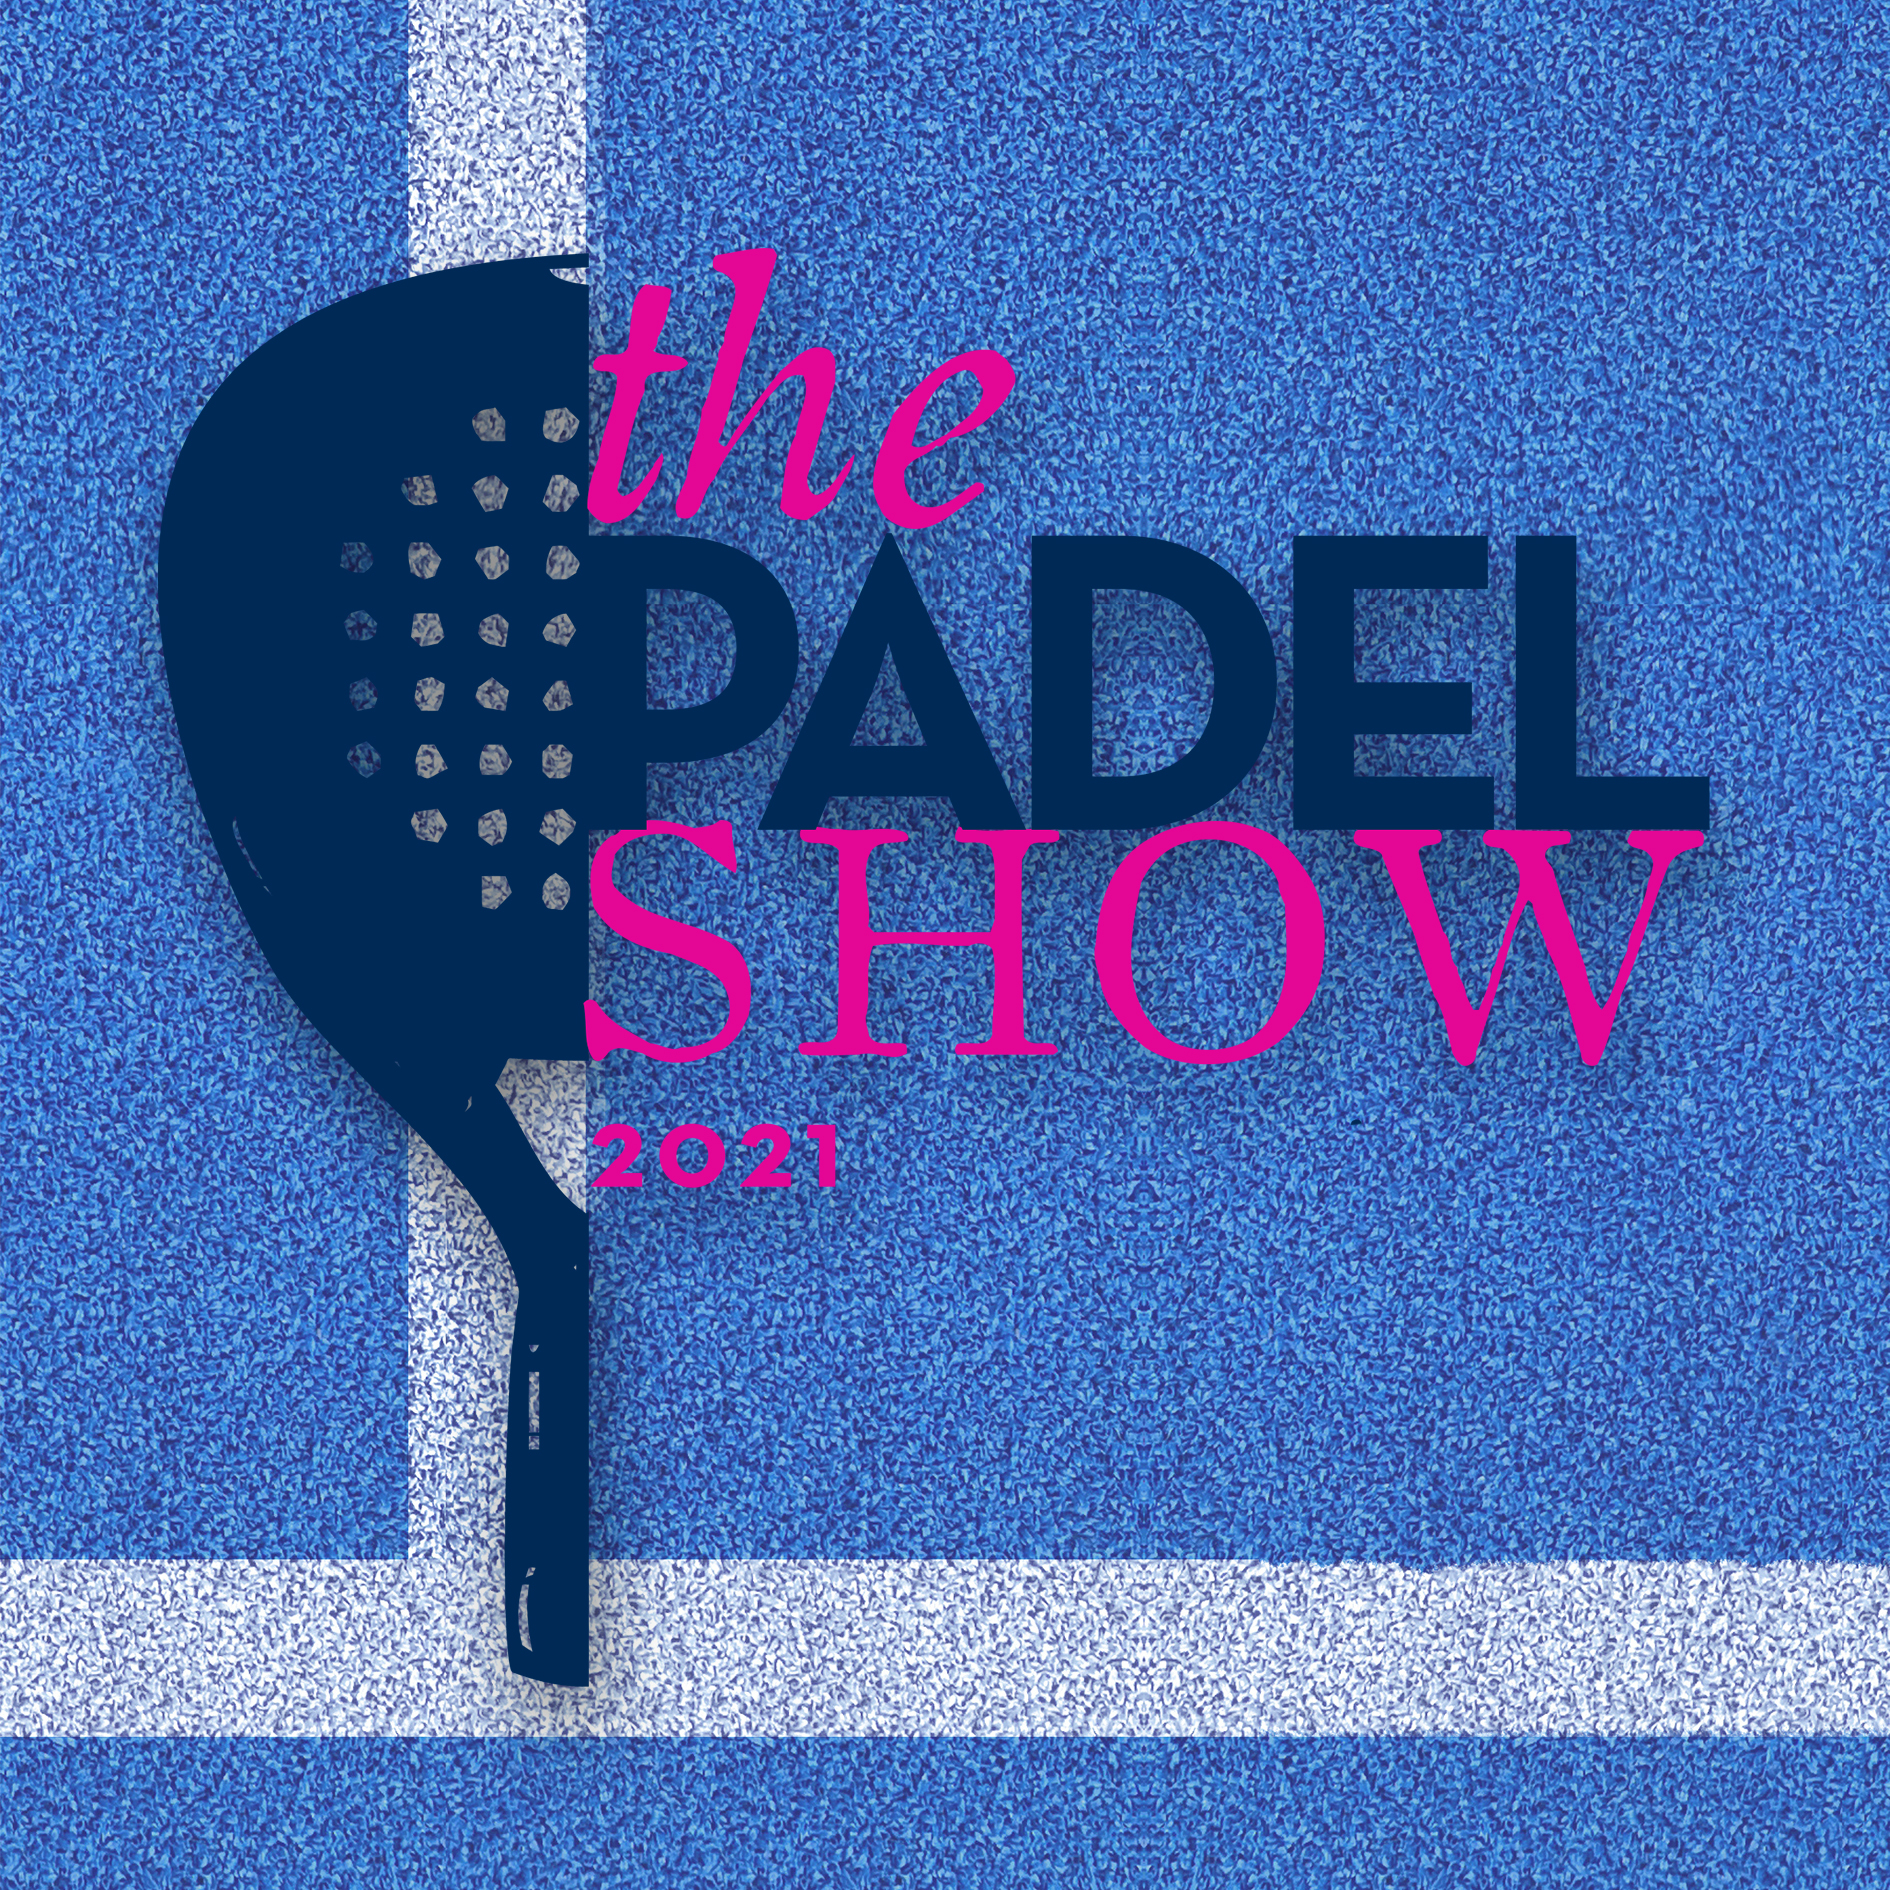 The Padel Show 2021